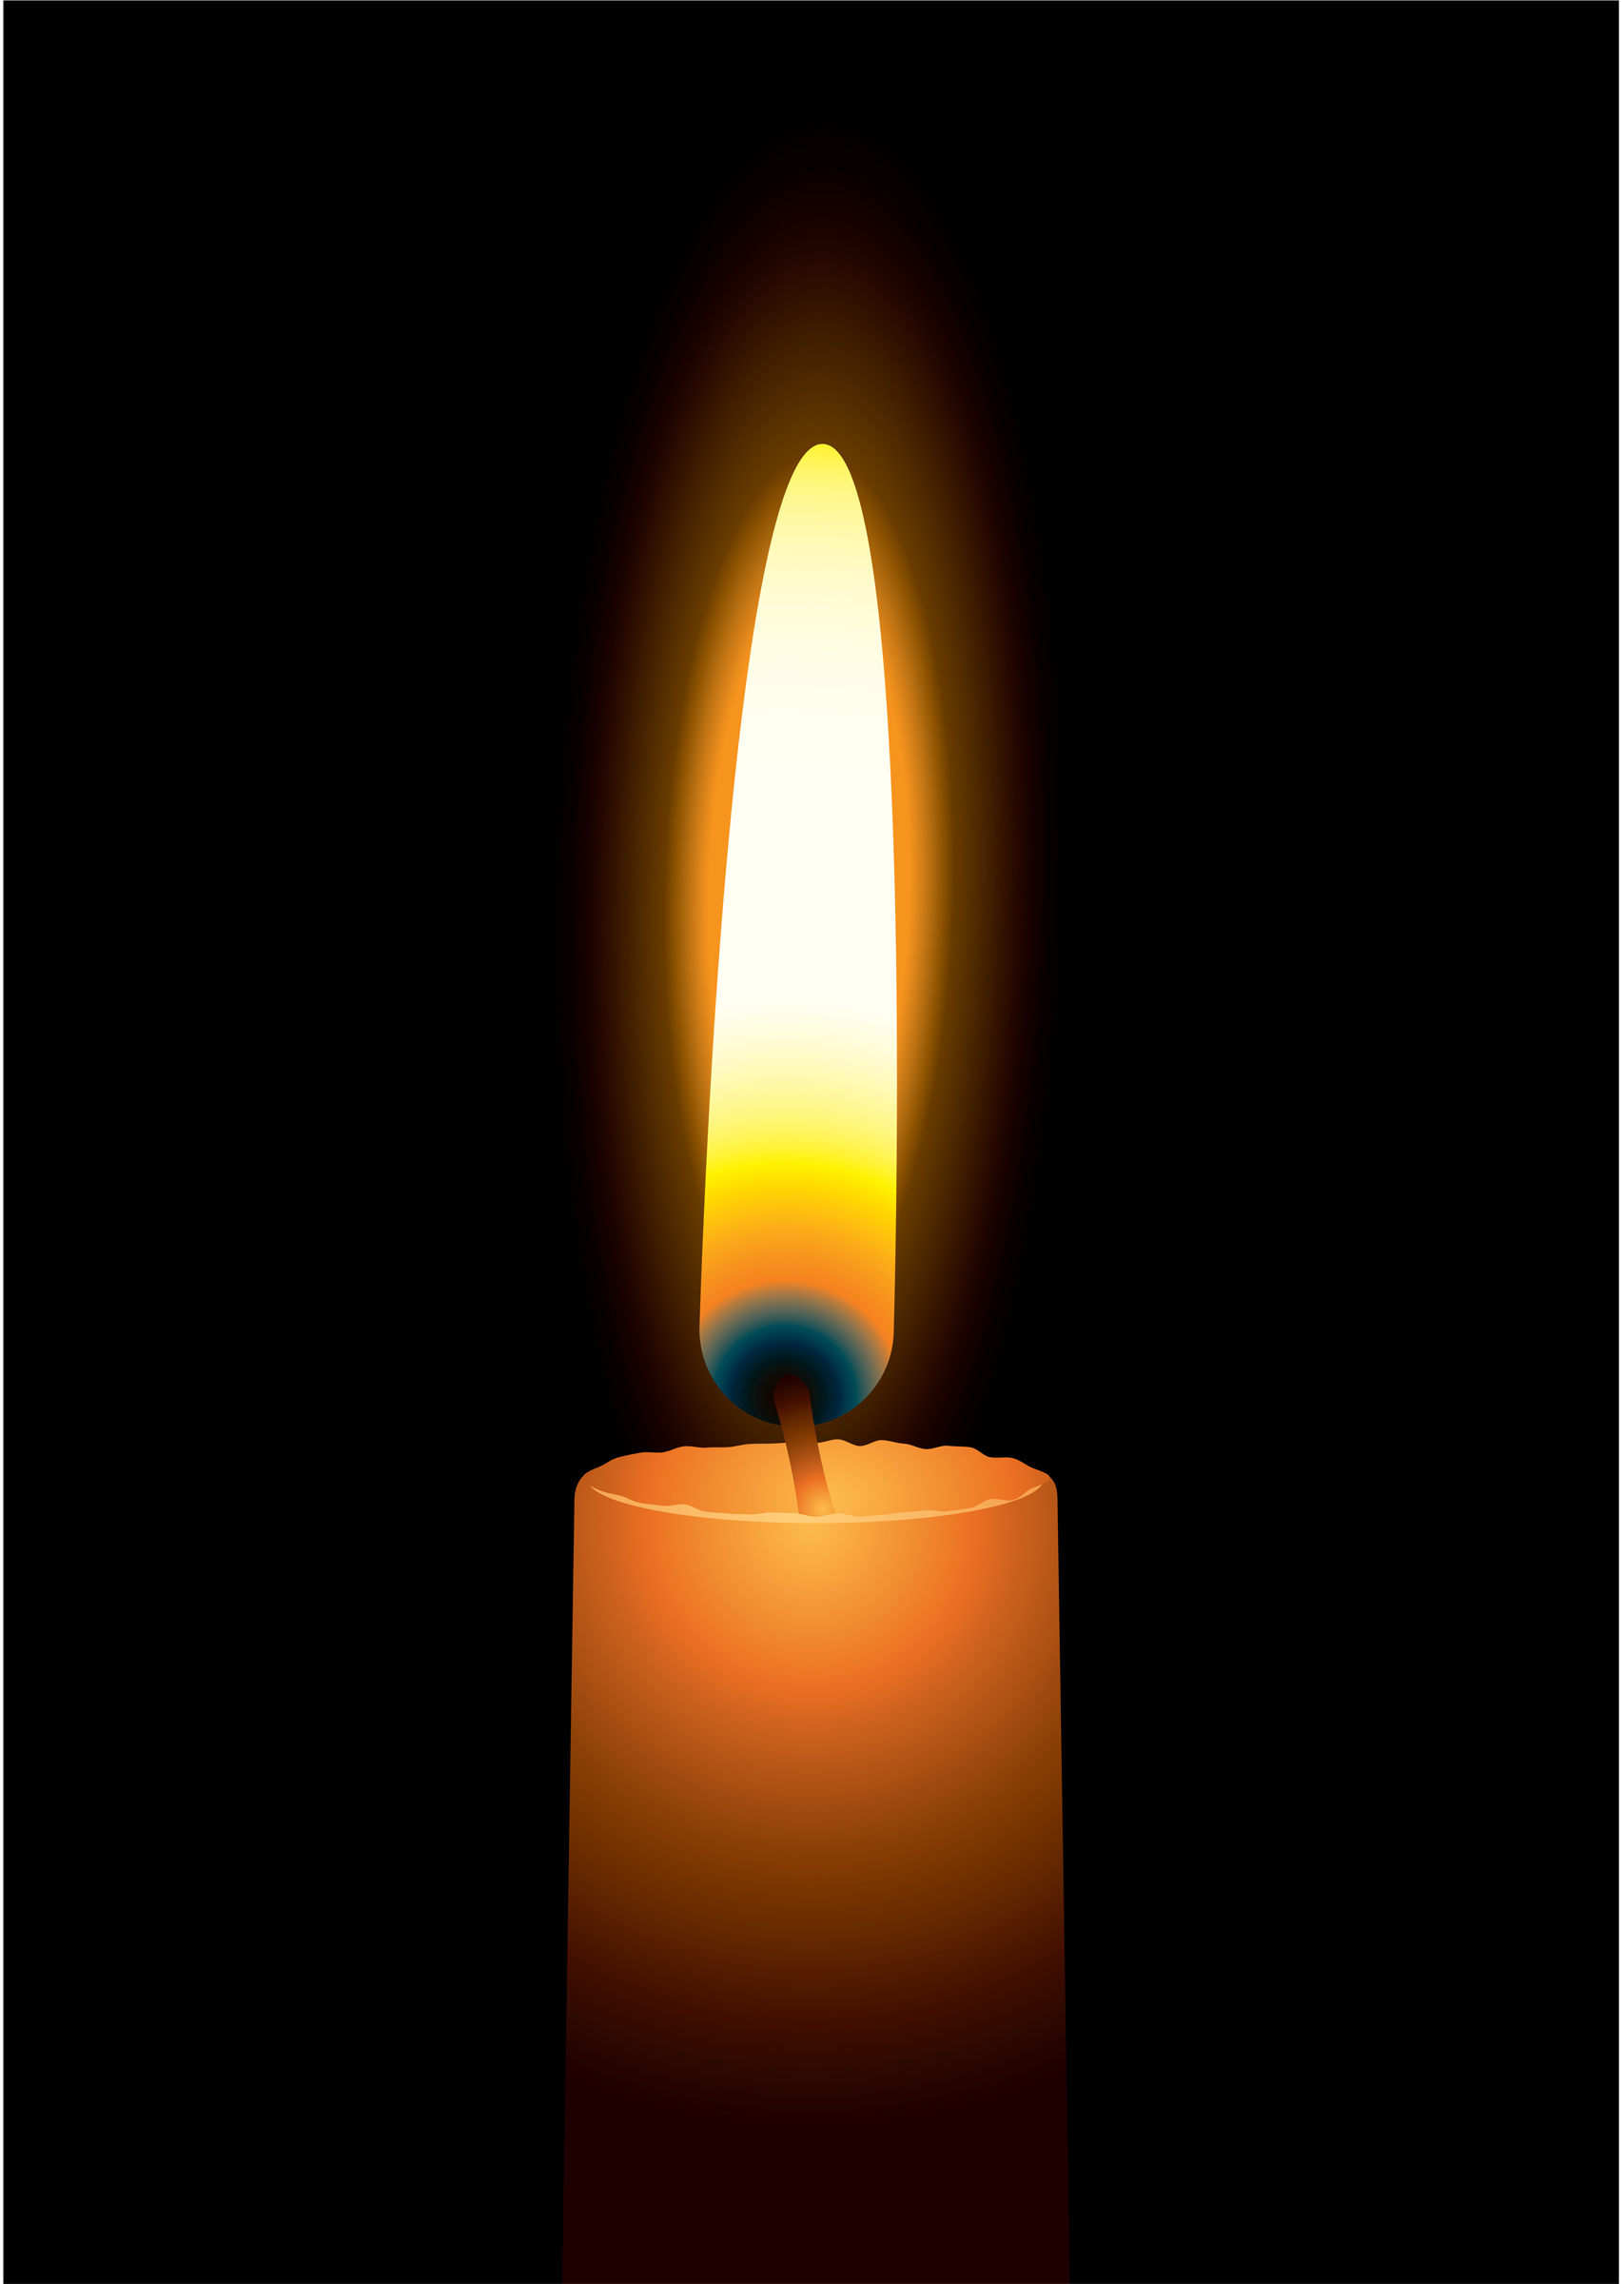 Animated Candle Flame Gif Clipart - Candle PNG